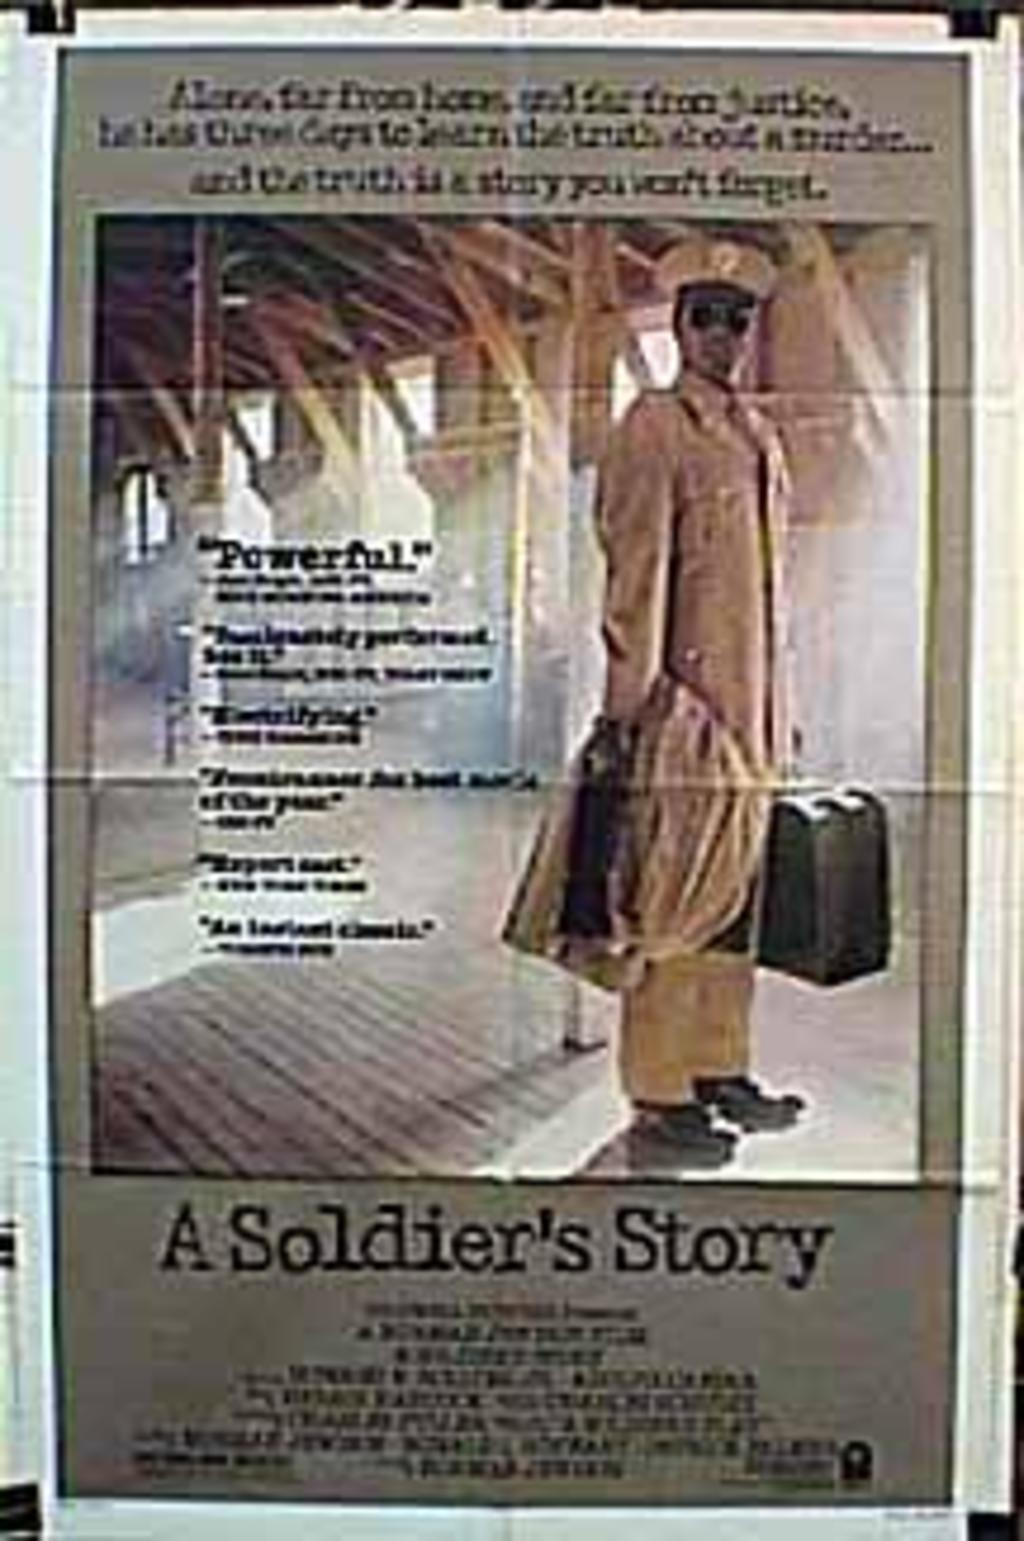 a soldier s story A soldier's story moves quickly and there are plenty of outside shouts to avoid that claustrophobic, one-dimensional, stage feeling like so many other reviewers agree this is very well done with negro soldiers just dying for a chance to prove their worth and kill some nazis.